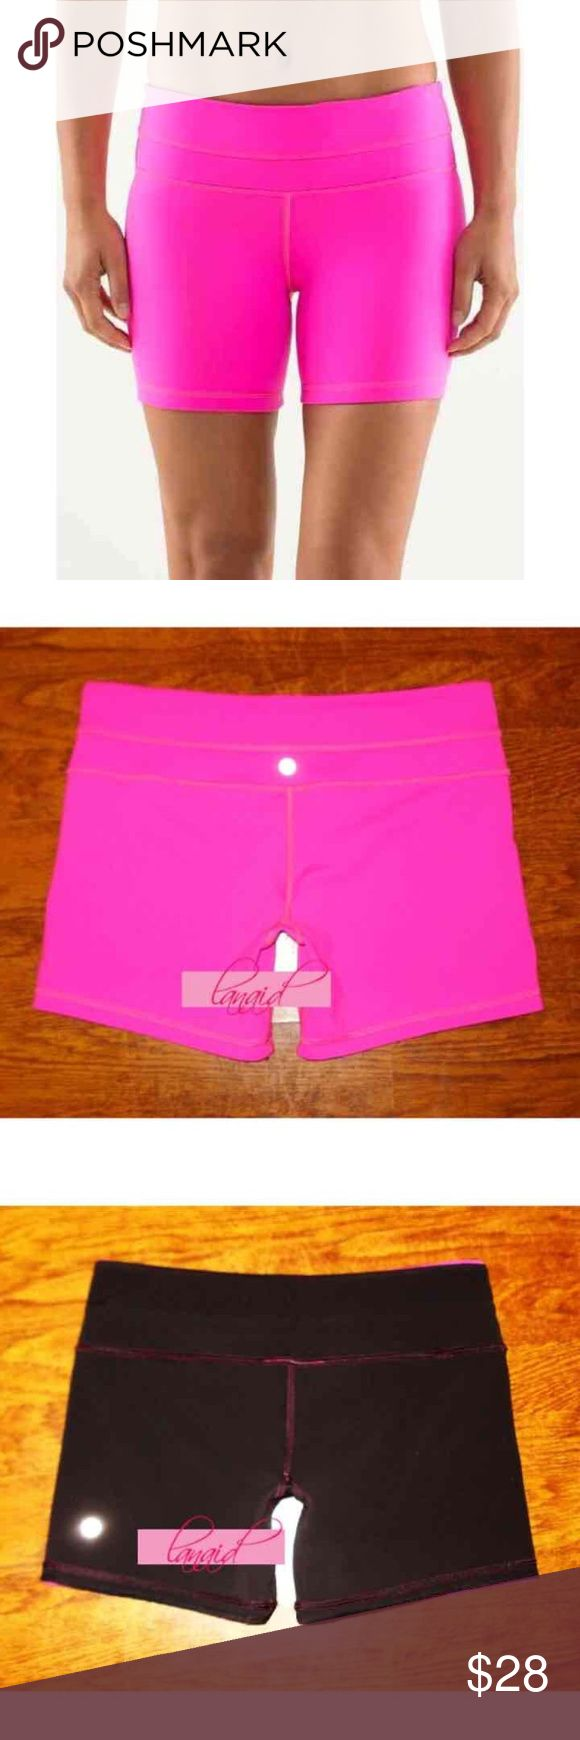 Lululemon Reversible Groove Shorts Hot Pink Black ➡️PRICE IS FIRM AND NON-NEGOTIABLE. NO OFFERS. NO TRADES.⬅️ Lululemon Reverse Groove shorts in Raspberry Glo/Black. Only worn once. Reverses from hot pink to black--two looks in one! Second-skin fit with a four-way stretch. Made with Full-On Luon® for incredible support and coverage with a cottony-soft feel. These were made without a size dot, but they're a size 4, as stated on the tag before it was removed. lululemon athletica Shorts